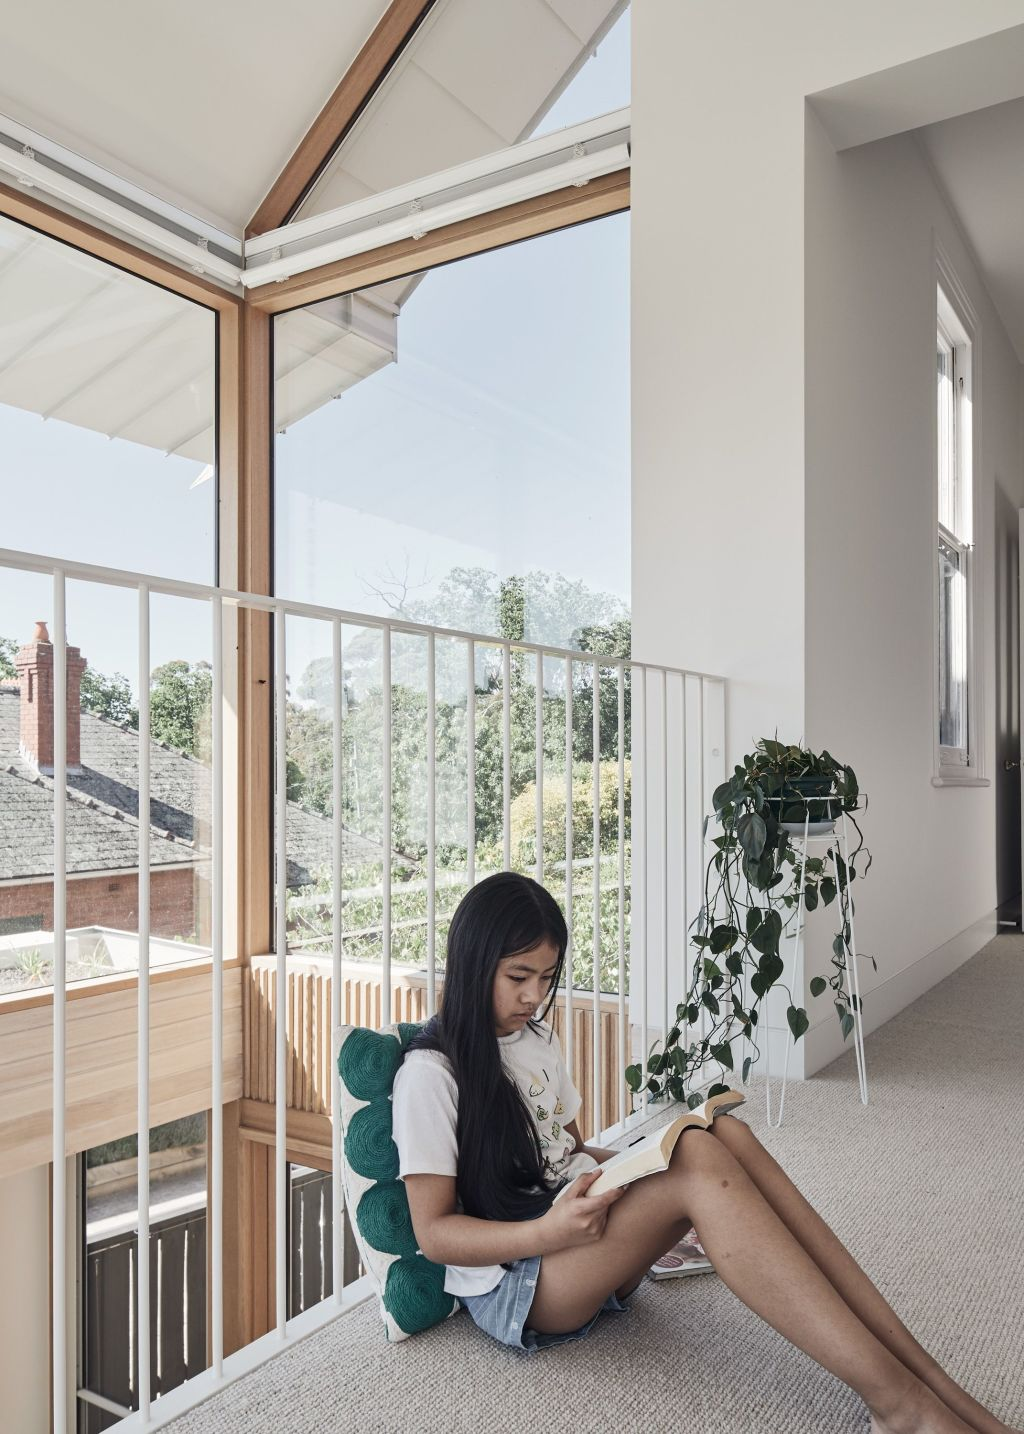 An_internal_balcony_designed_to_keep_the_children_out_of_their_bedrooms._Photo_Peter_Bennetts_ixfobi